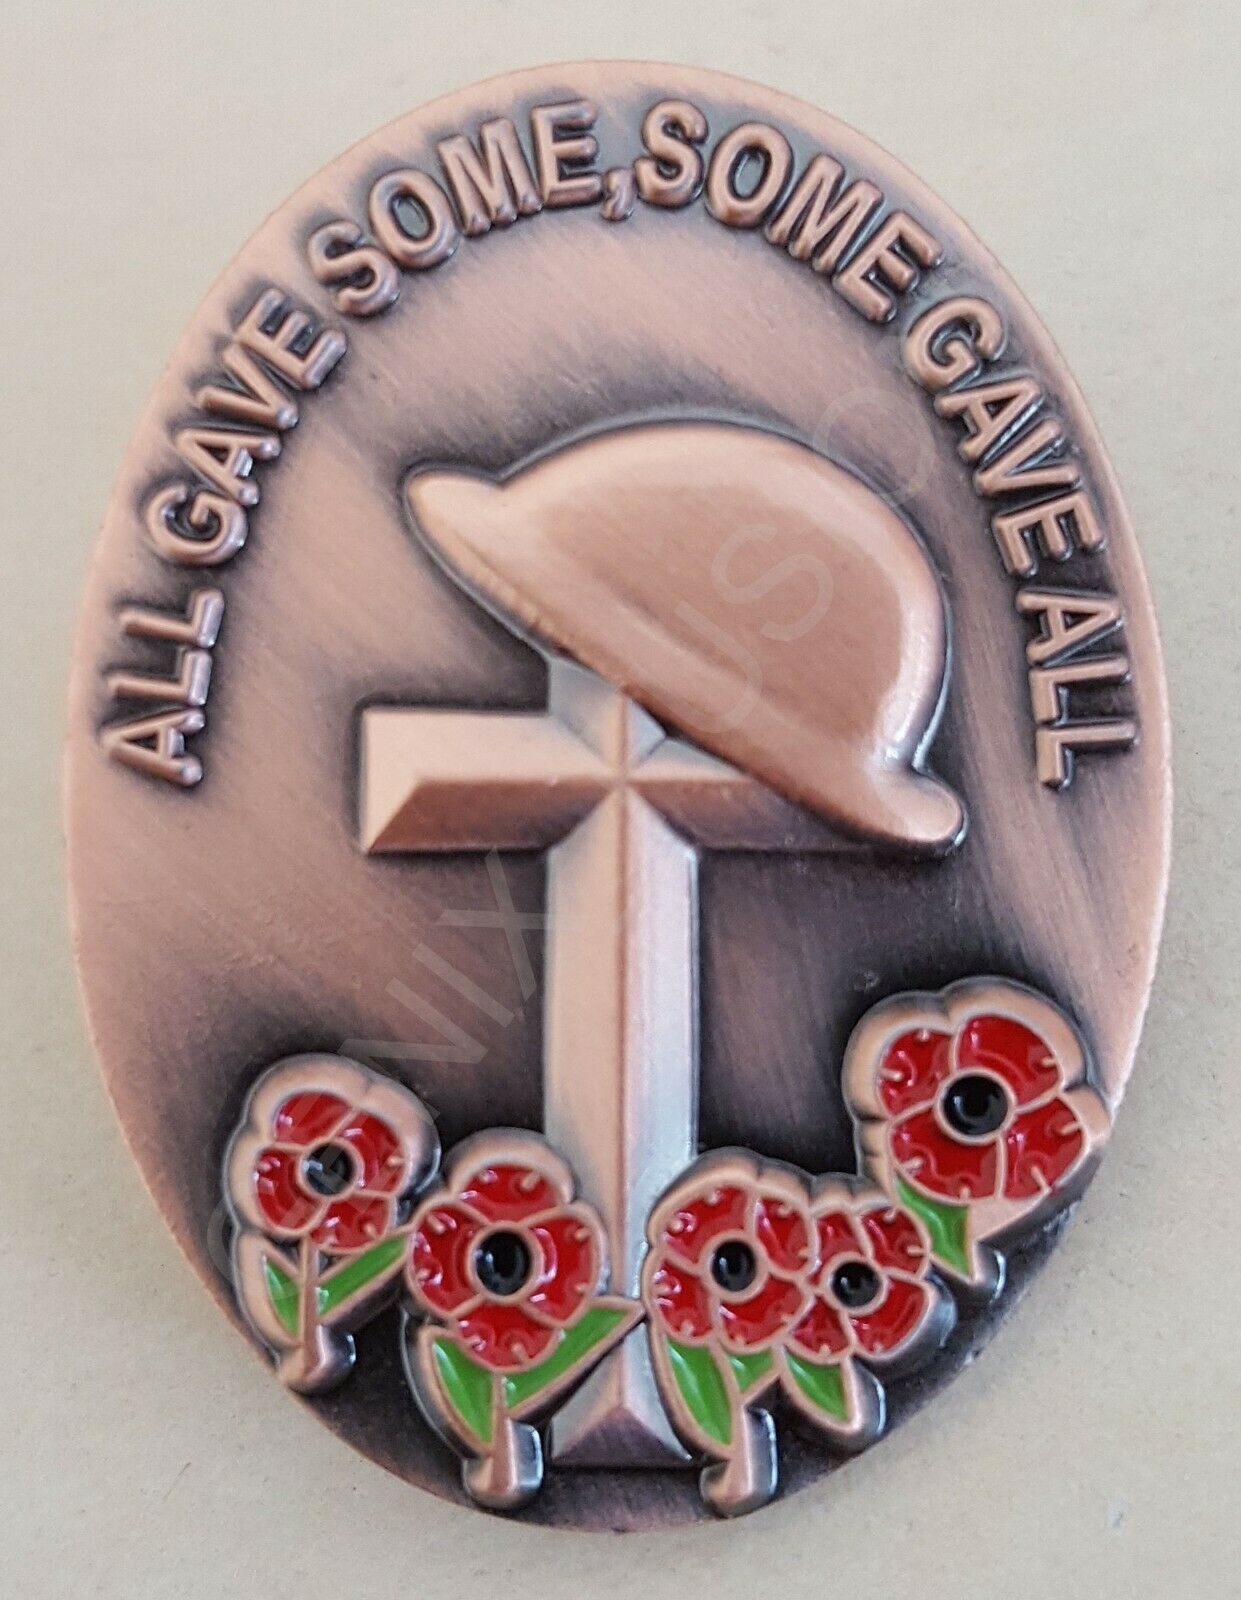 Details about Remembrance Day 2019 Poppy 3D Helmet Soldier